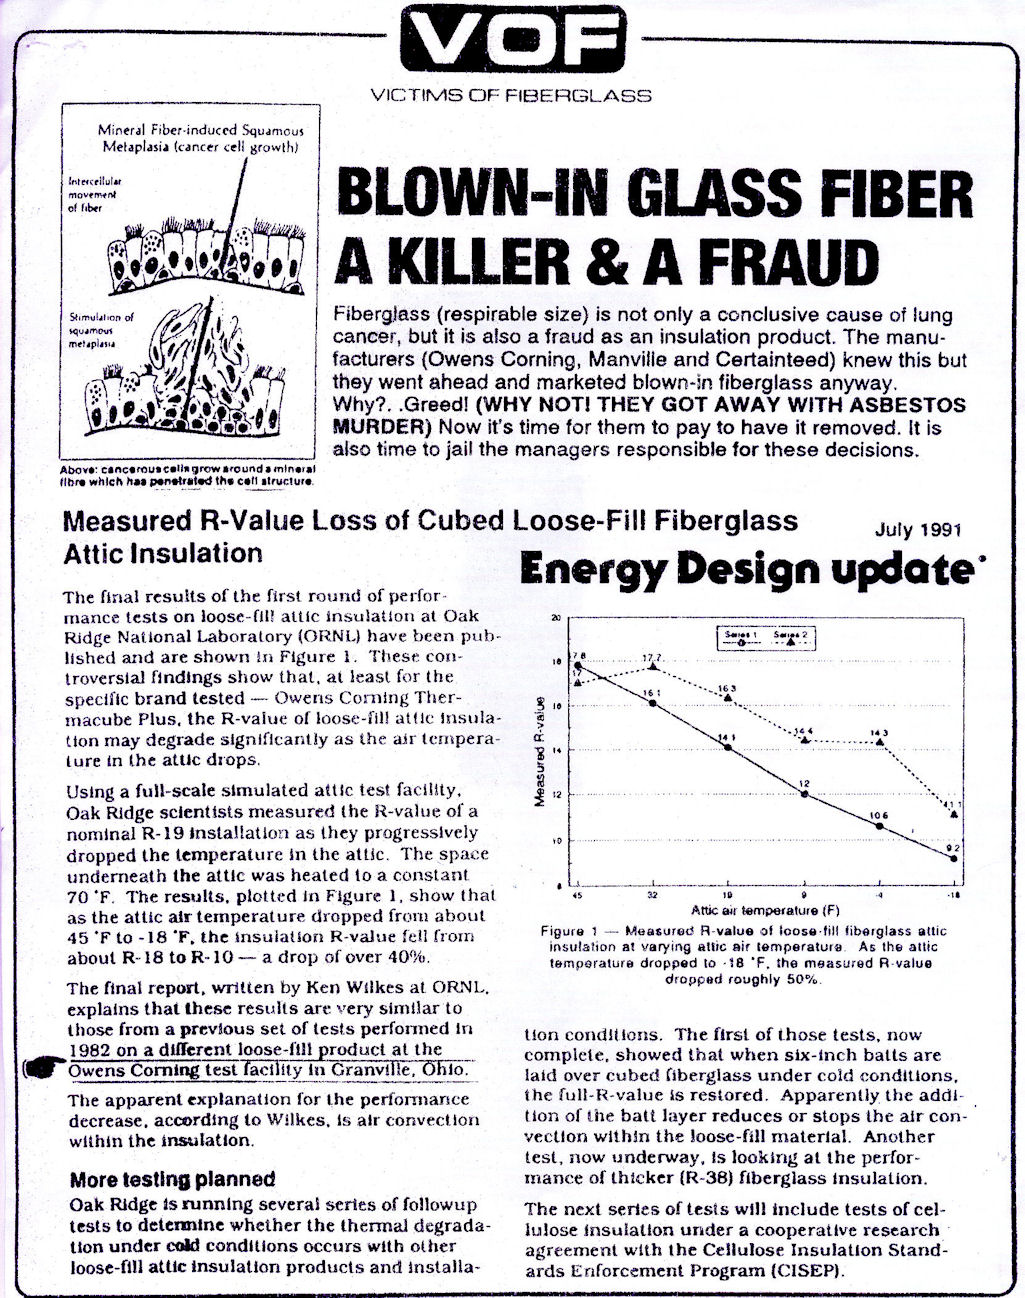 Fiberglass - respirable size is not only a conclusive cause of lung cancer, but it is also a fraud as an insulation product